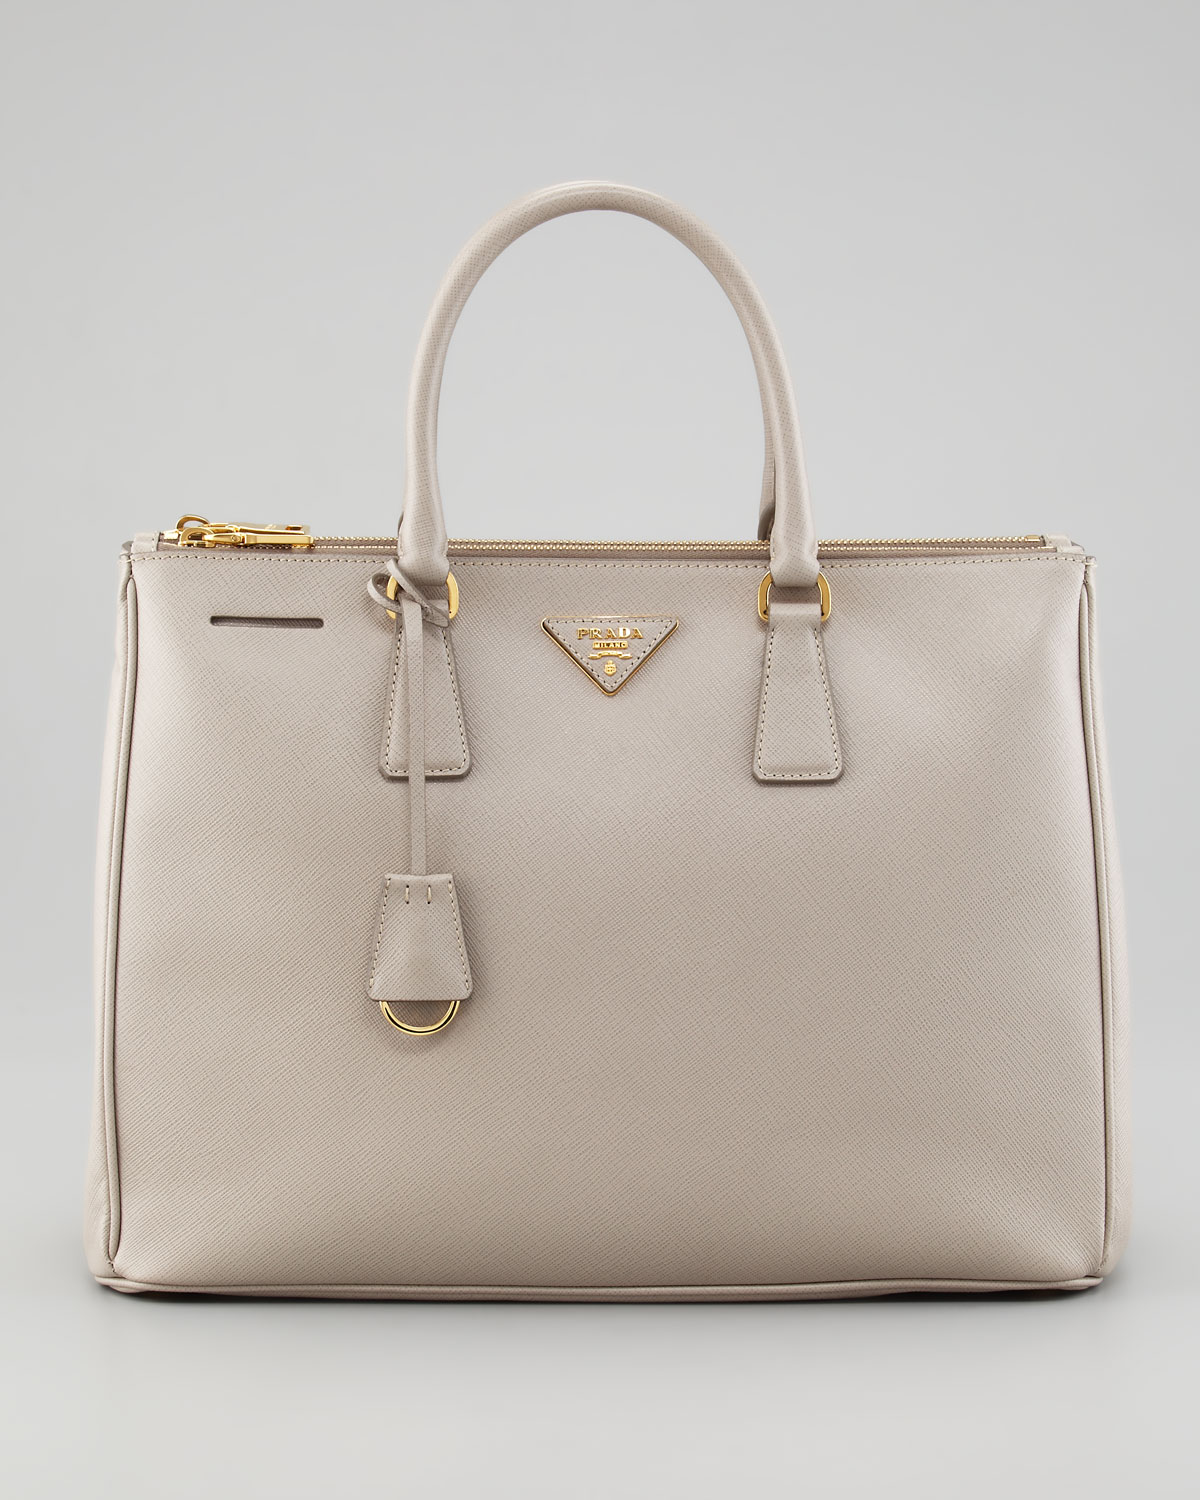 b9a0444b4994 ... discount code for prada saffiano executive tote bag pomice in natural  lyst d756c 4abff